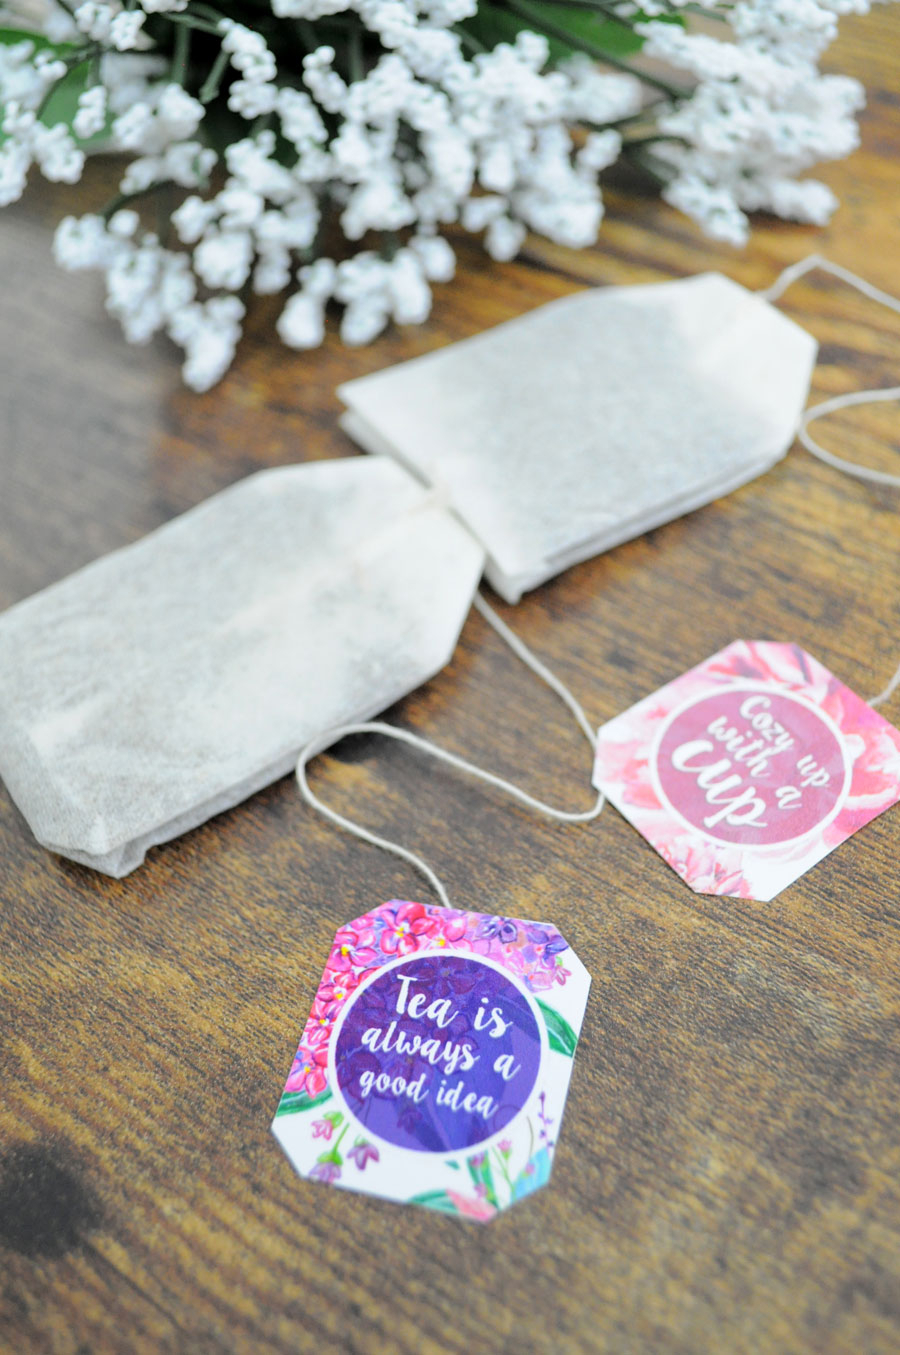 10 Most Recommended Diy Bridal Shower Invitations Ideas diy bridal shower tea party invitations